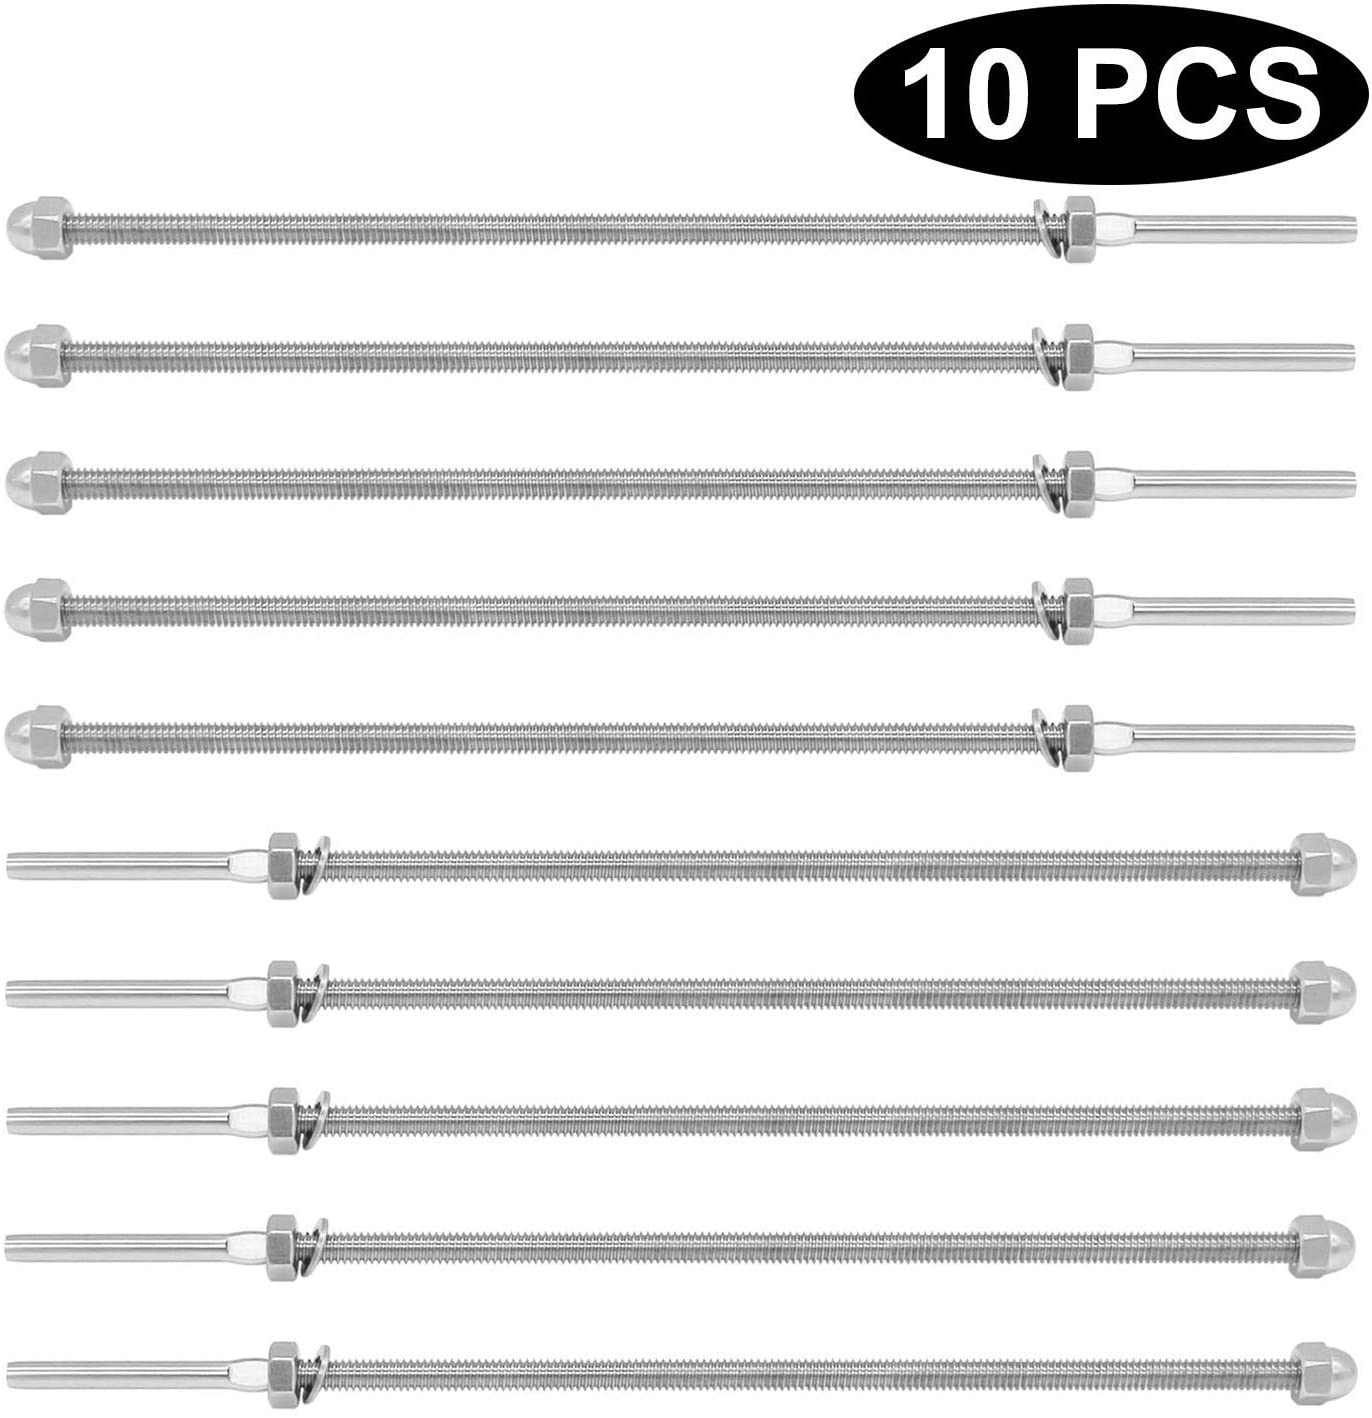 """Lehom 10 Pack Cable Railing Swage Threaded Stud Tension End Fitting Terminal for 1/8 Cable Deck Railing Hand Swage T316 Stainless Steel(10"""" Long, for 6x6 or 8x8 Deck Wood Posts)"""